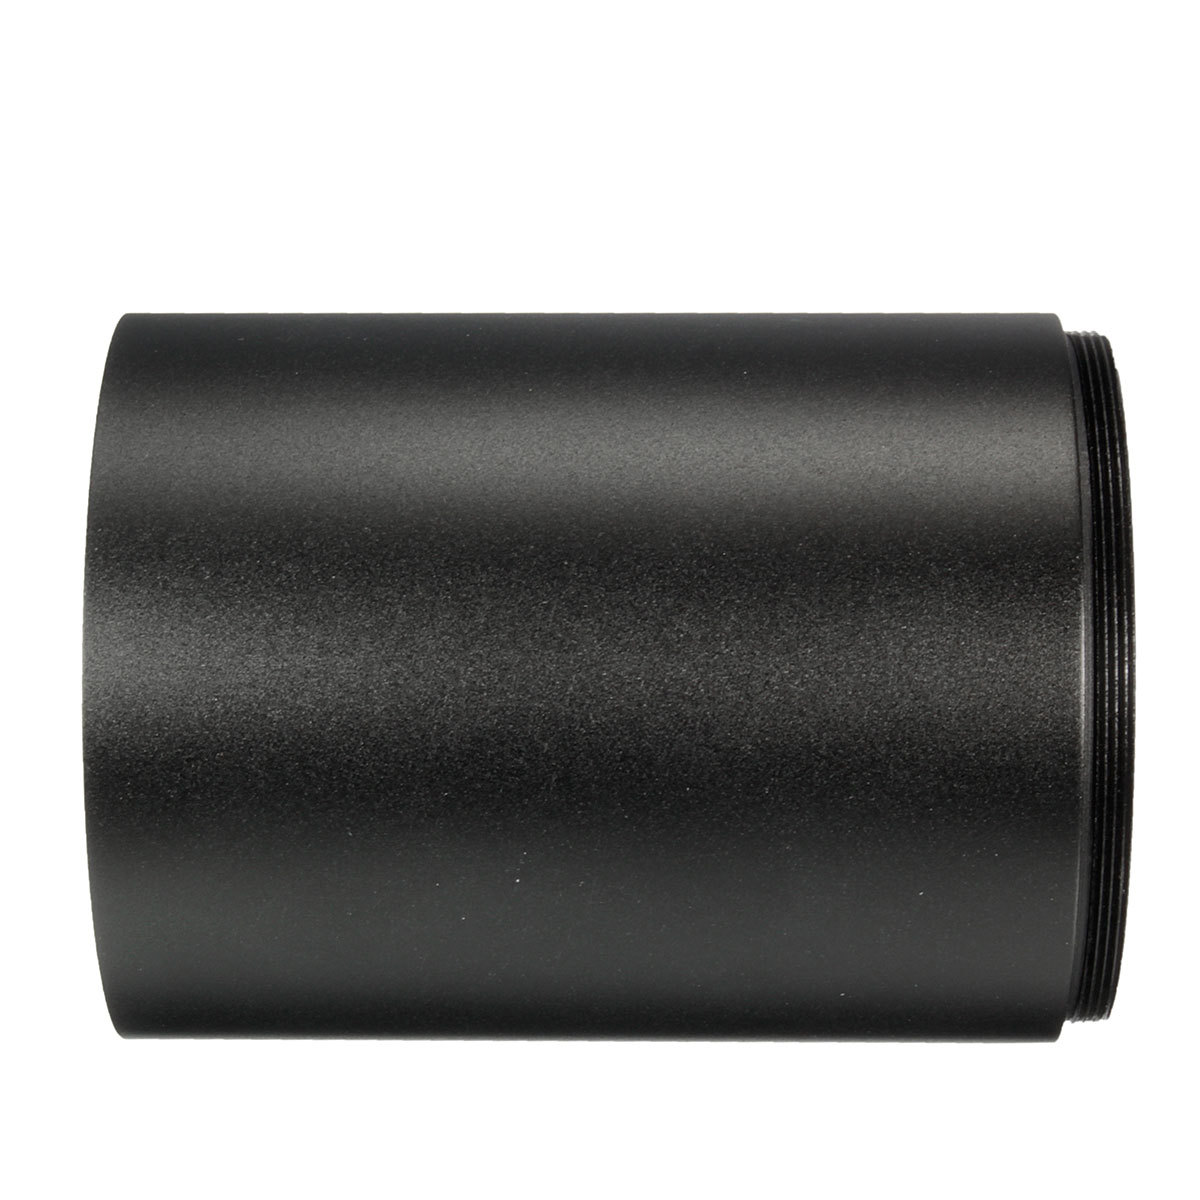 50mm Tactical Metal Alloy Advanced Optic Sunshade Shade